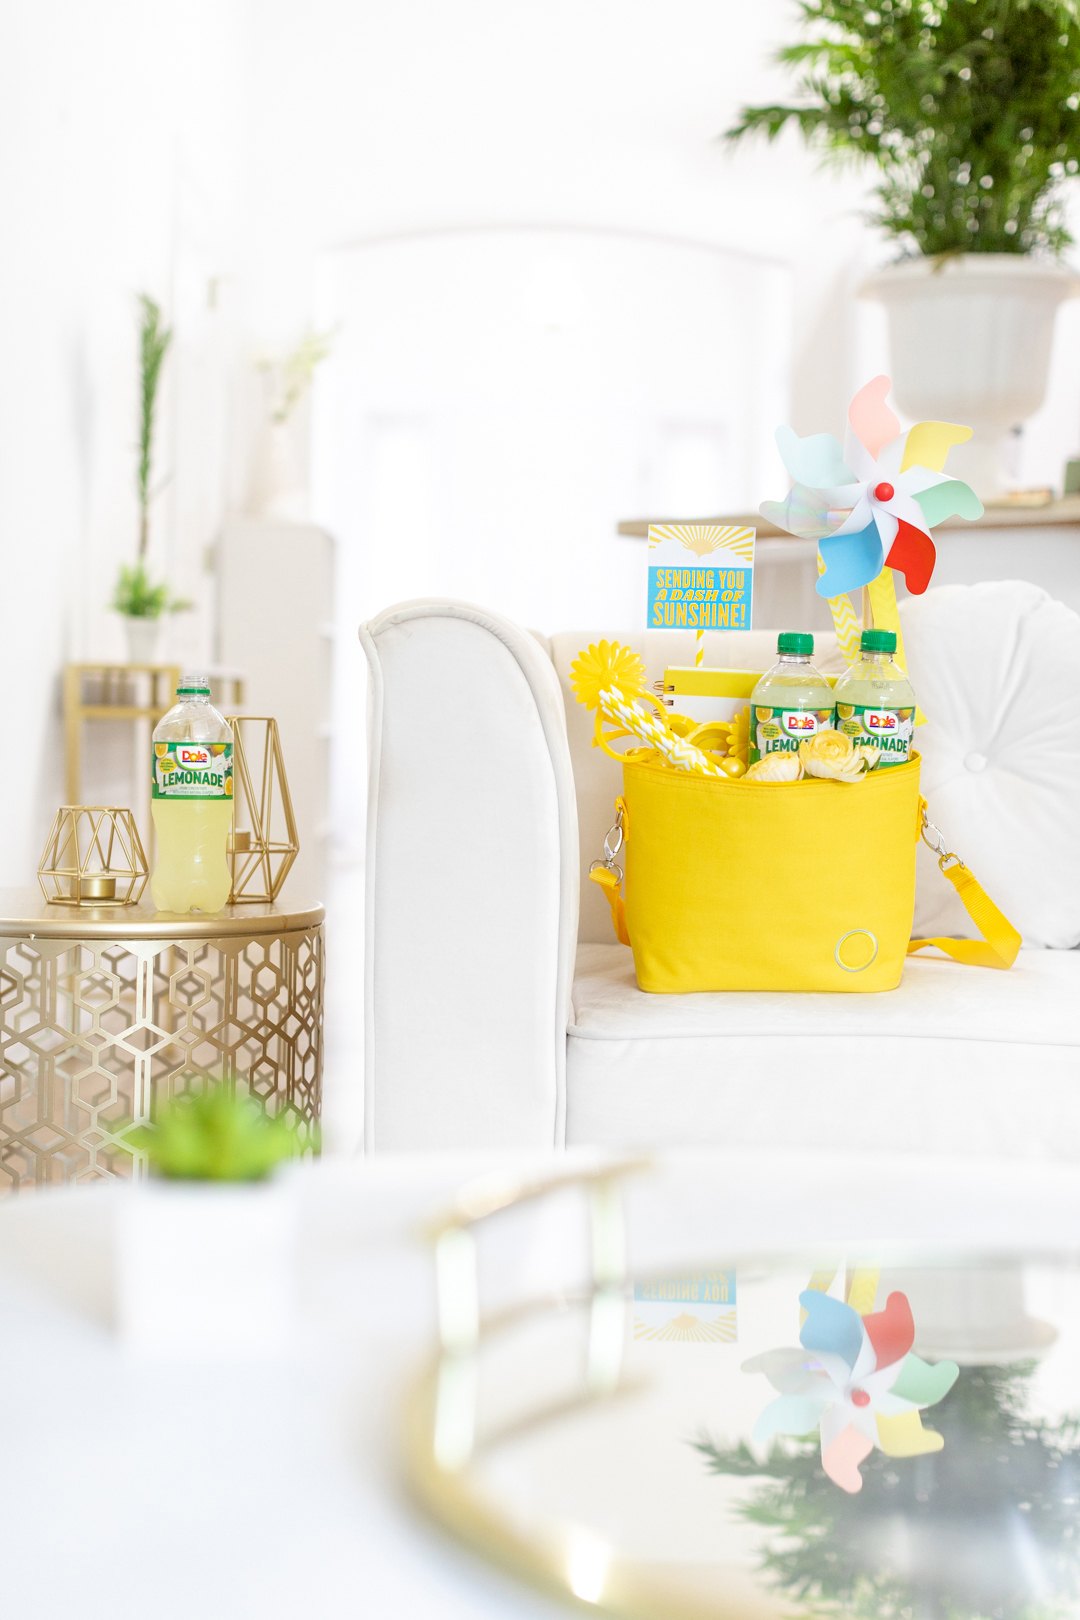 Living room setting with gift basket set on a chair